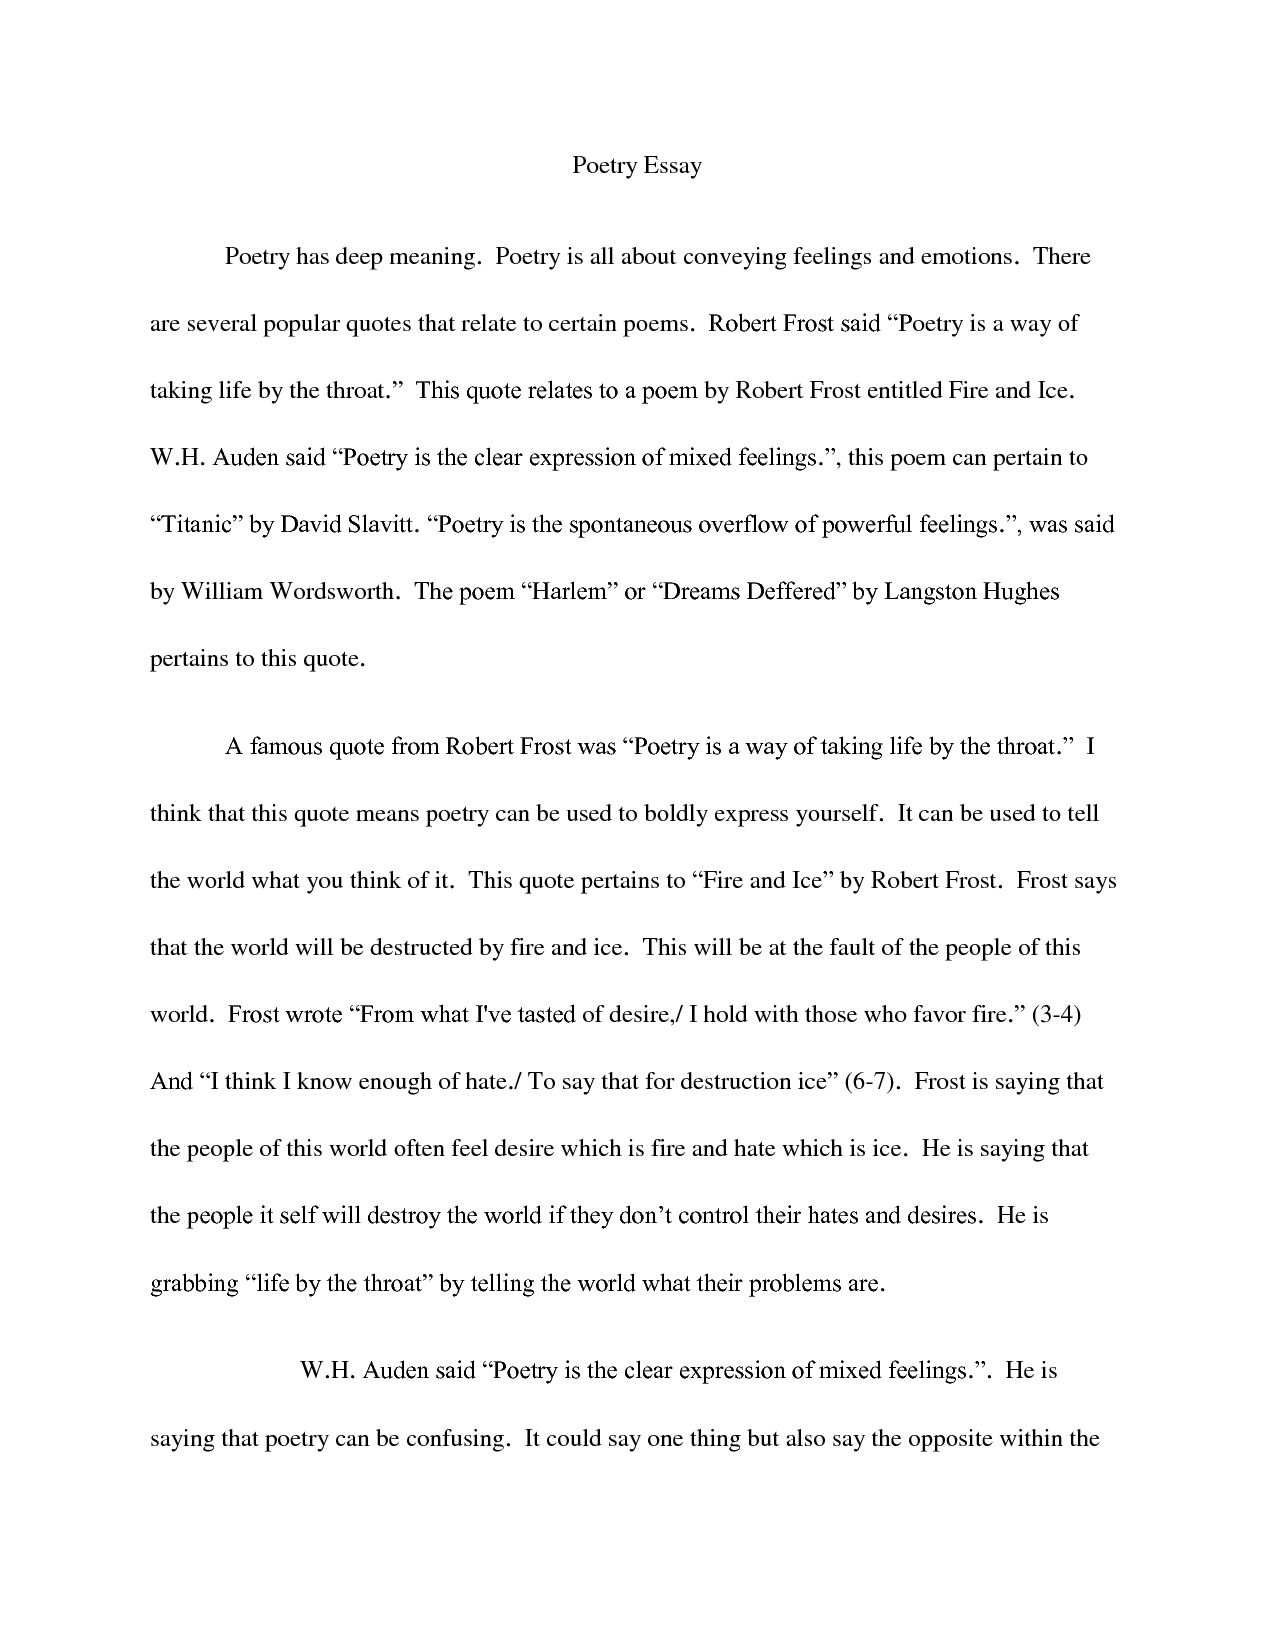 embedding quotes in an essay By worth weller building an essay from sources:  however, quoting sources in  your essays:  most of your essay is in your own words, but you use quotes to.